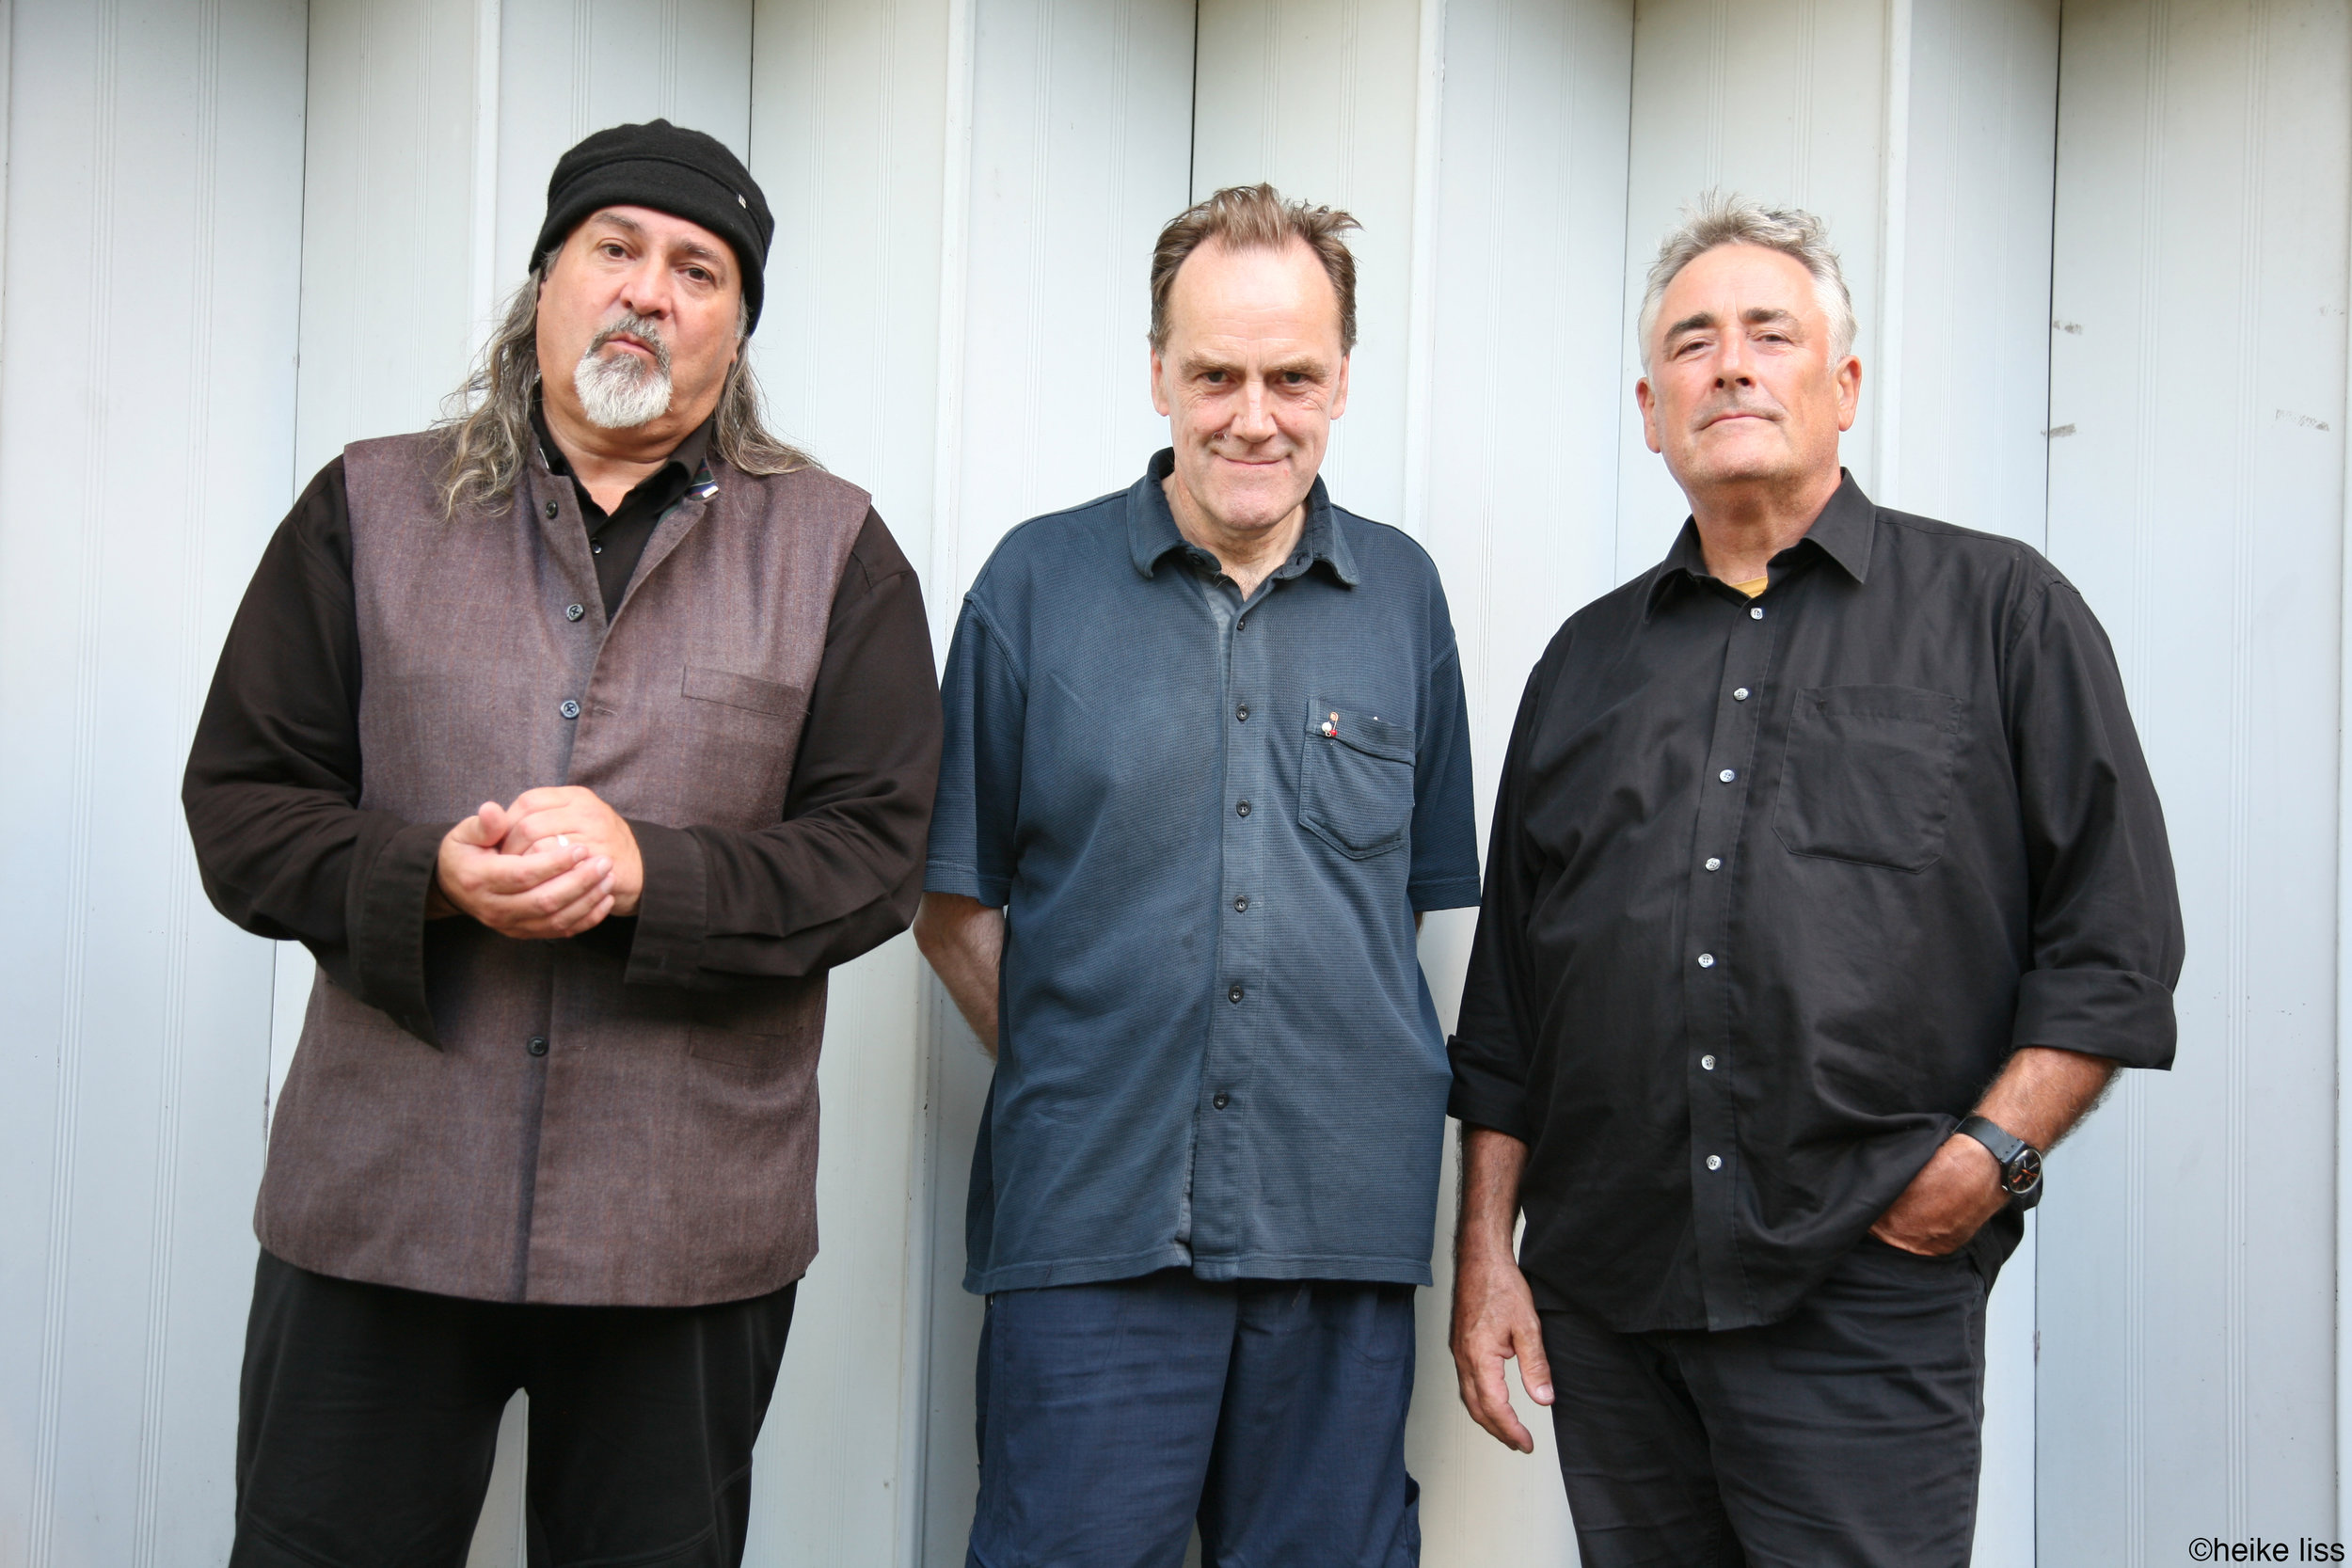 Massacre: Bill Laswell, Charles Hayward, Fred Frith